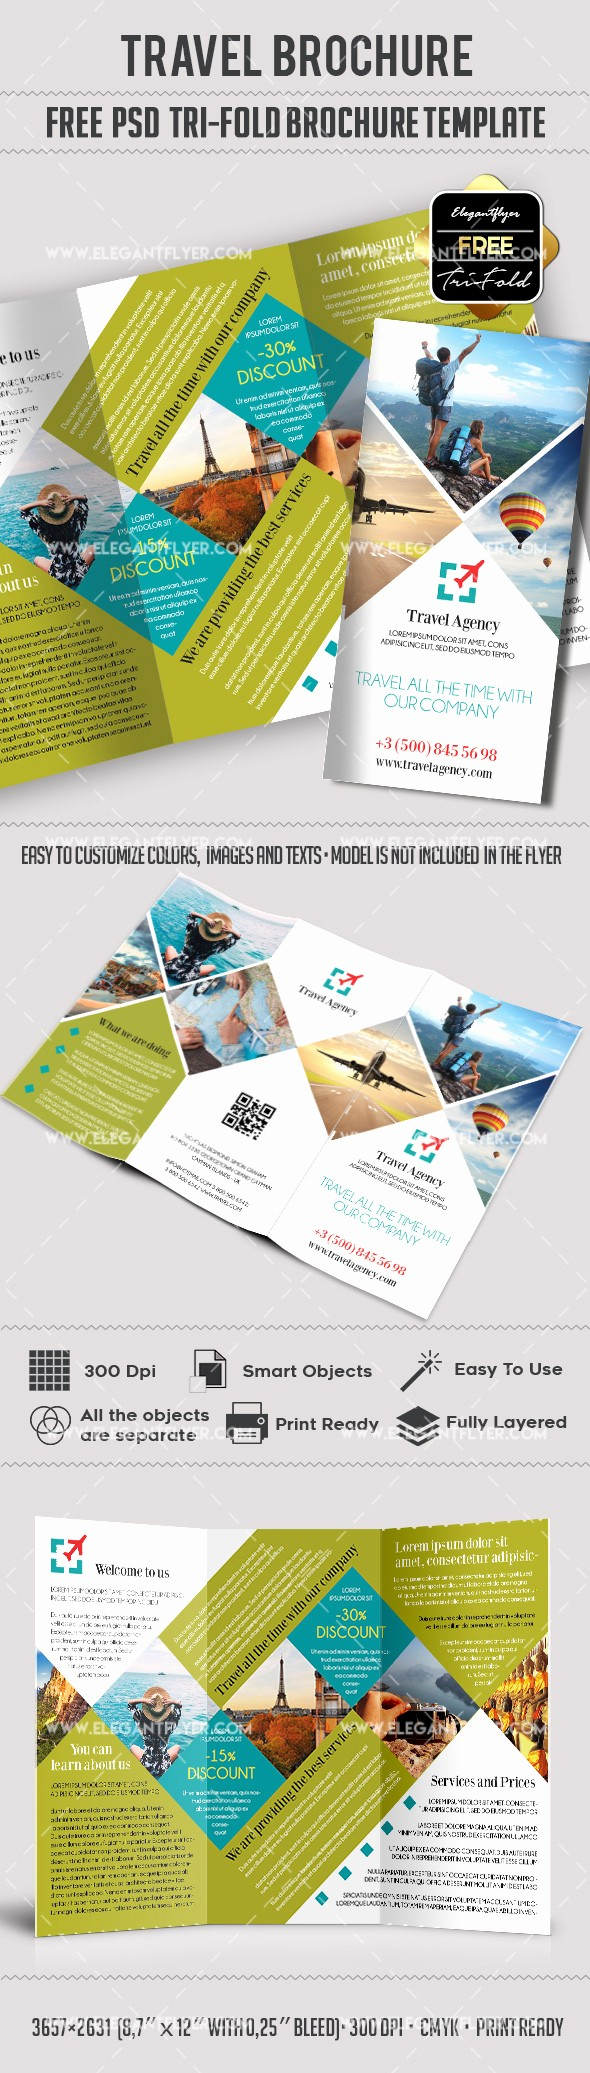 Tri Fold Travel Brochure Examples Unique Travel – Free Psd Tri Fold Psd Brochure Template – by